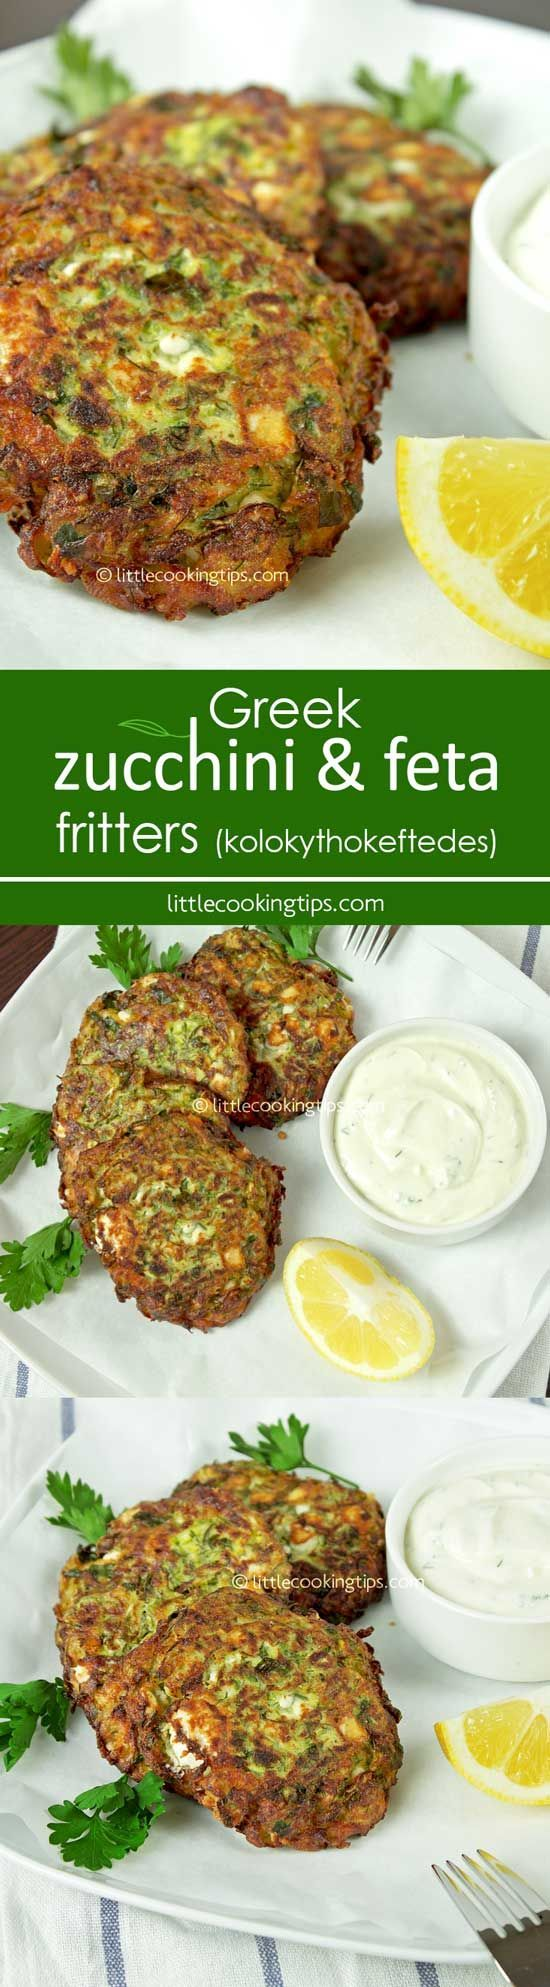 Greek zucchini and feta fritters (Kolokythokeftedes). Adelicious vegetarian recipe, ideal for Meatless Mondays. Served as an appetizer or even a main dish with some tzatziki or a Greek salad on the side. #Greek #zucchini #patties #vegetarian #meatlessMonday